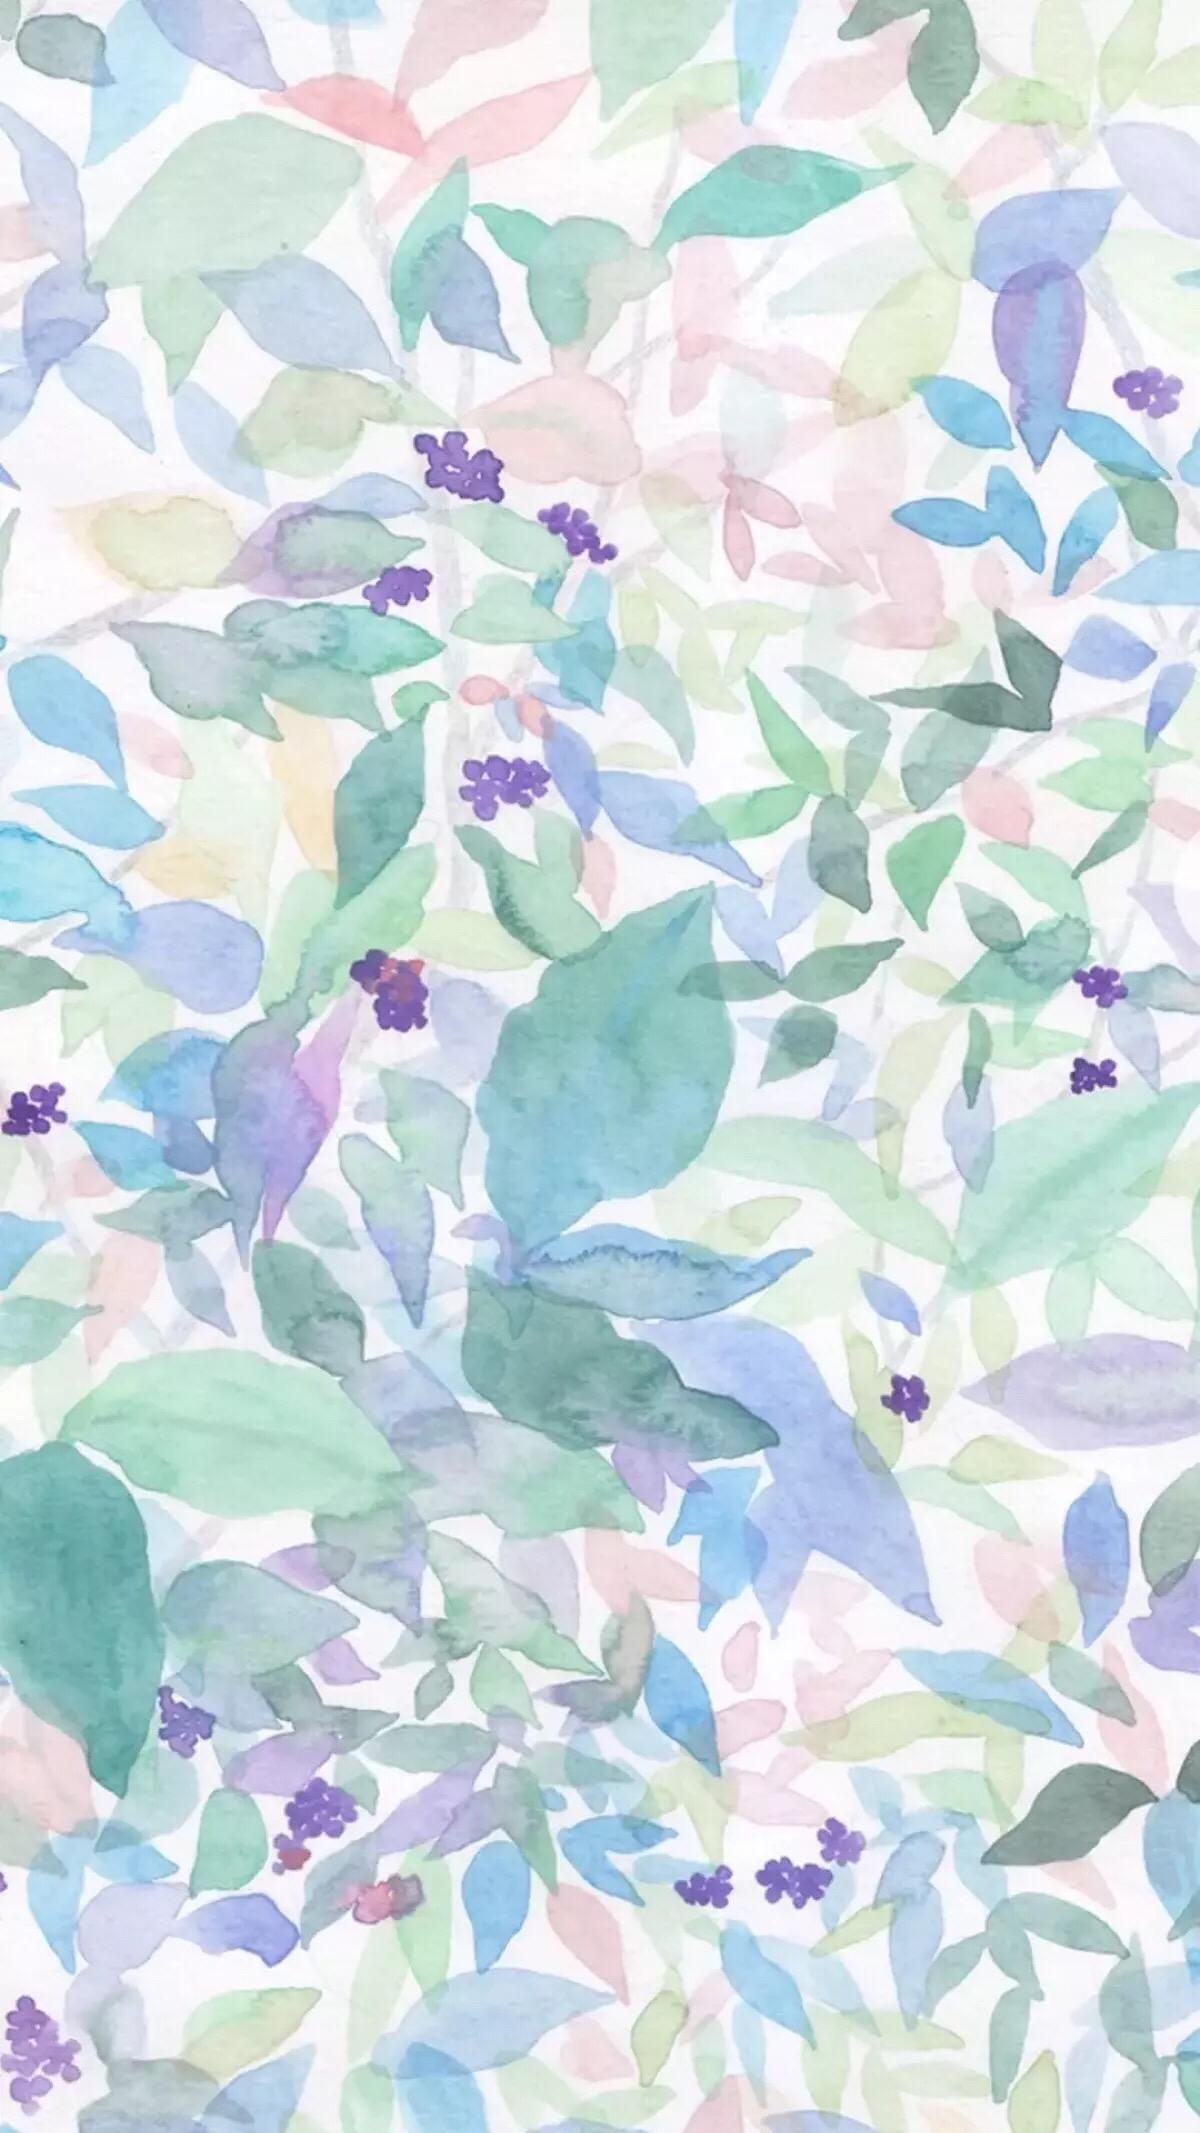 New Design For Digital Printing Watercolor Background Floral